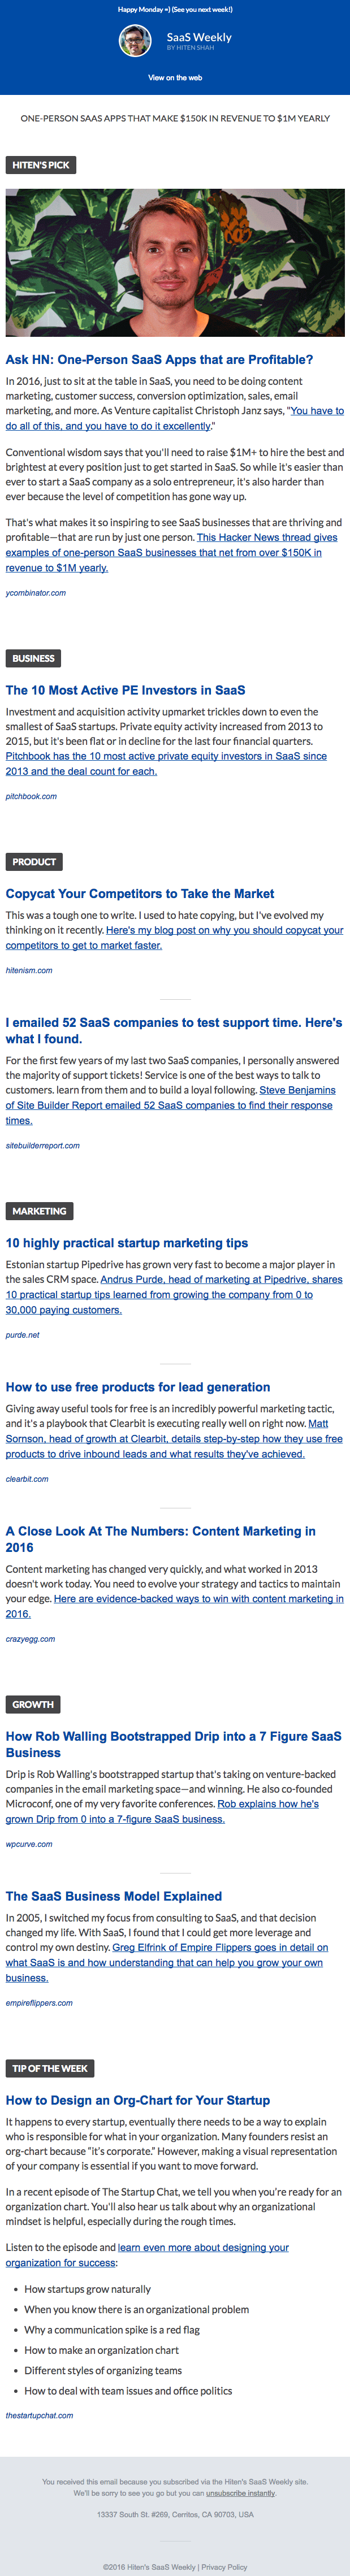 Email newsletter example design with articles by SaaS Weekly